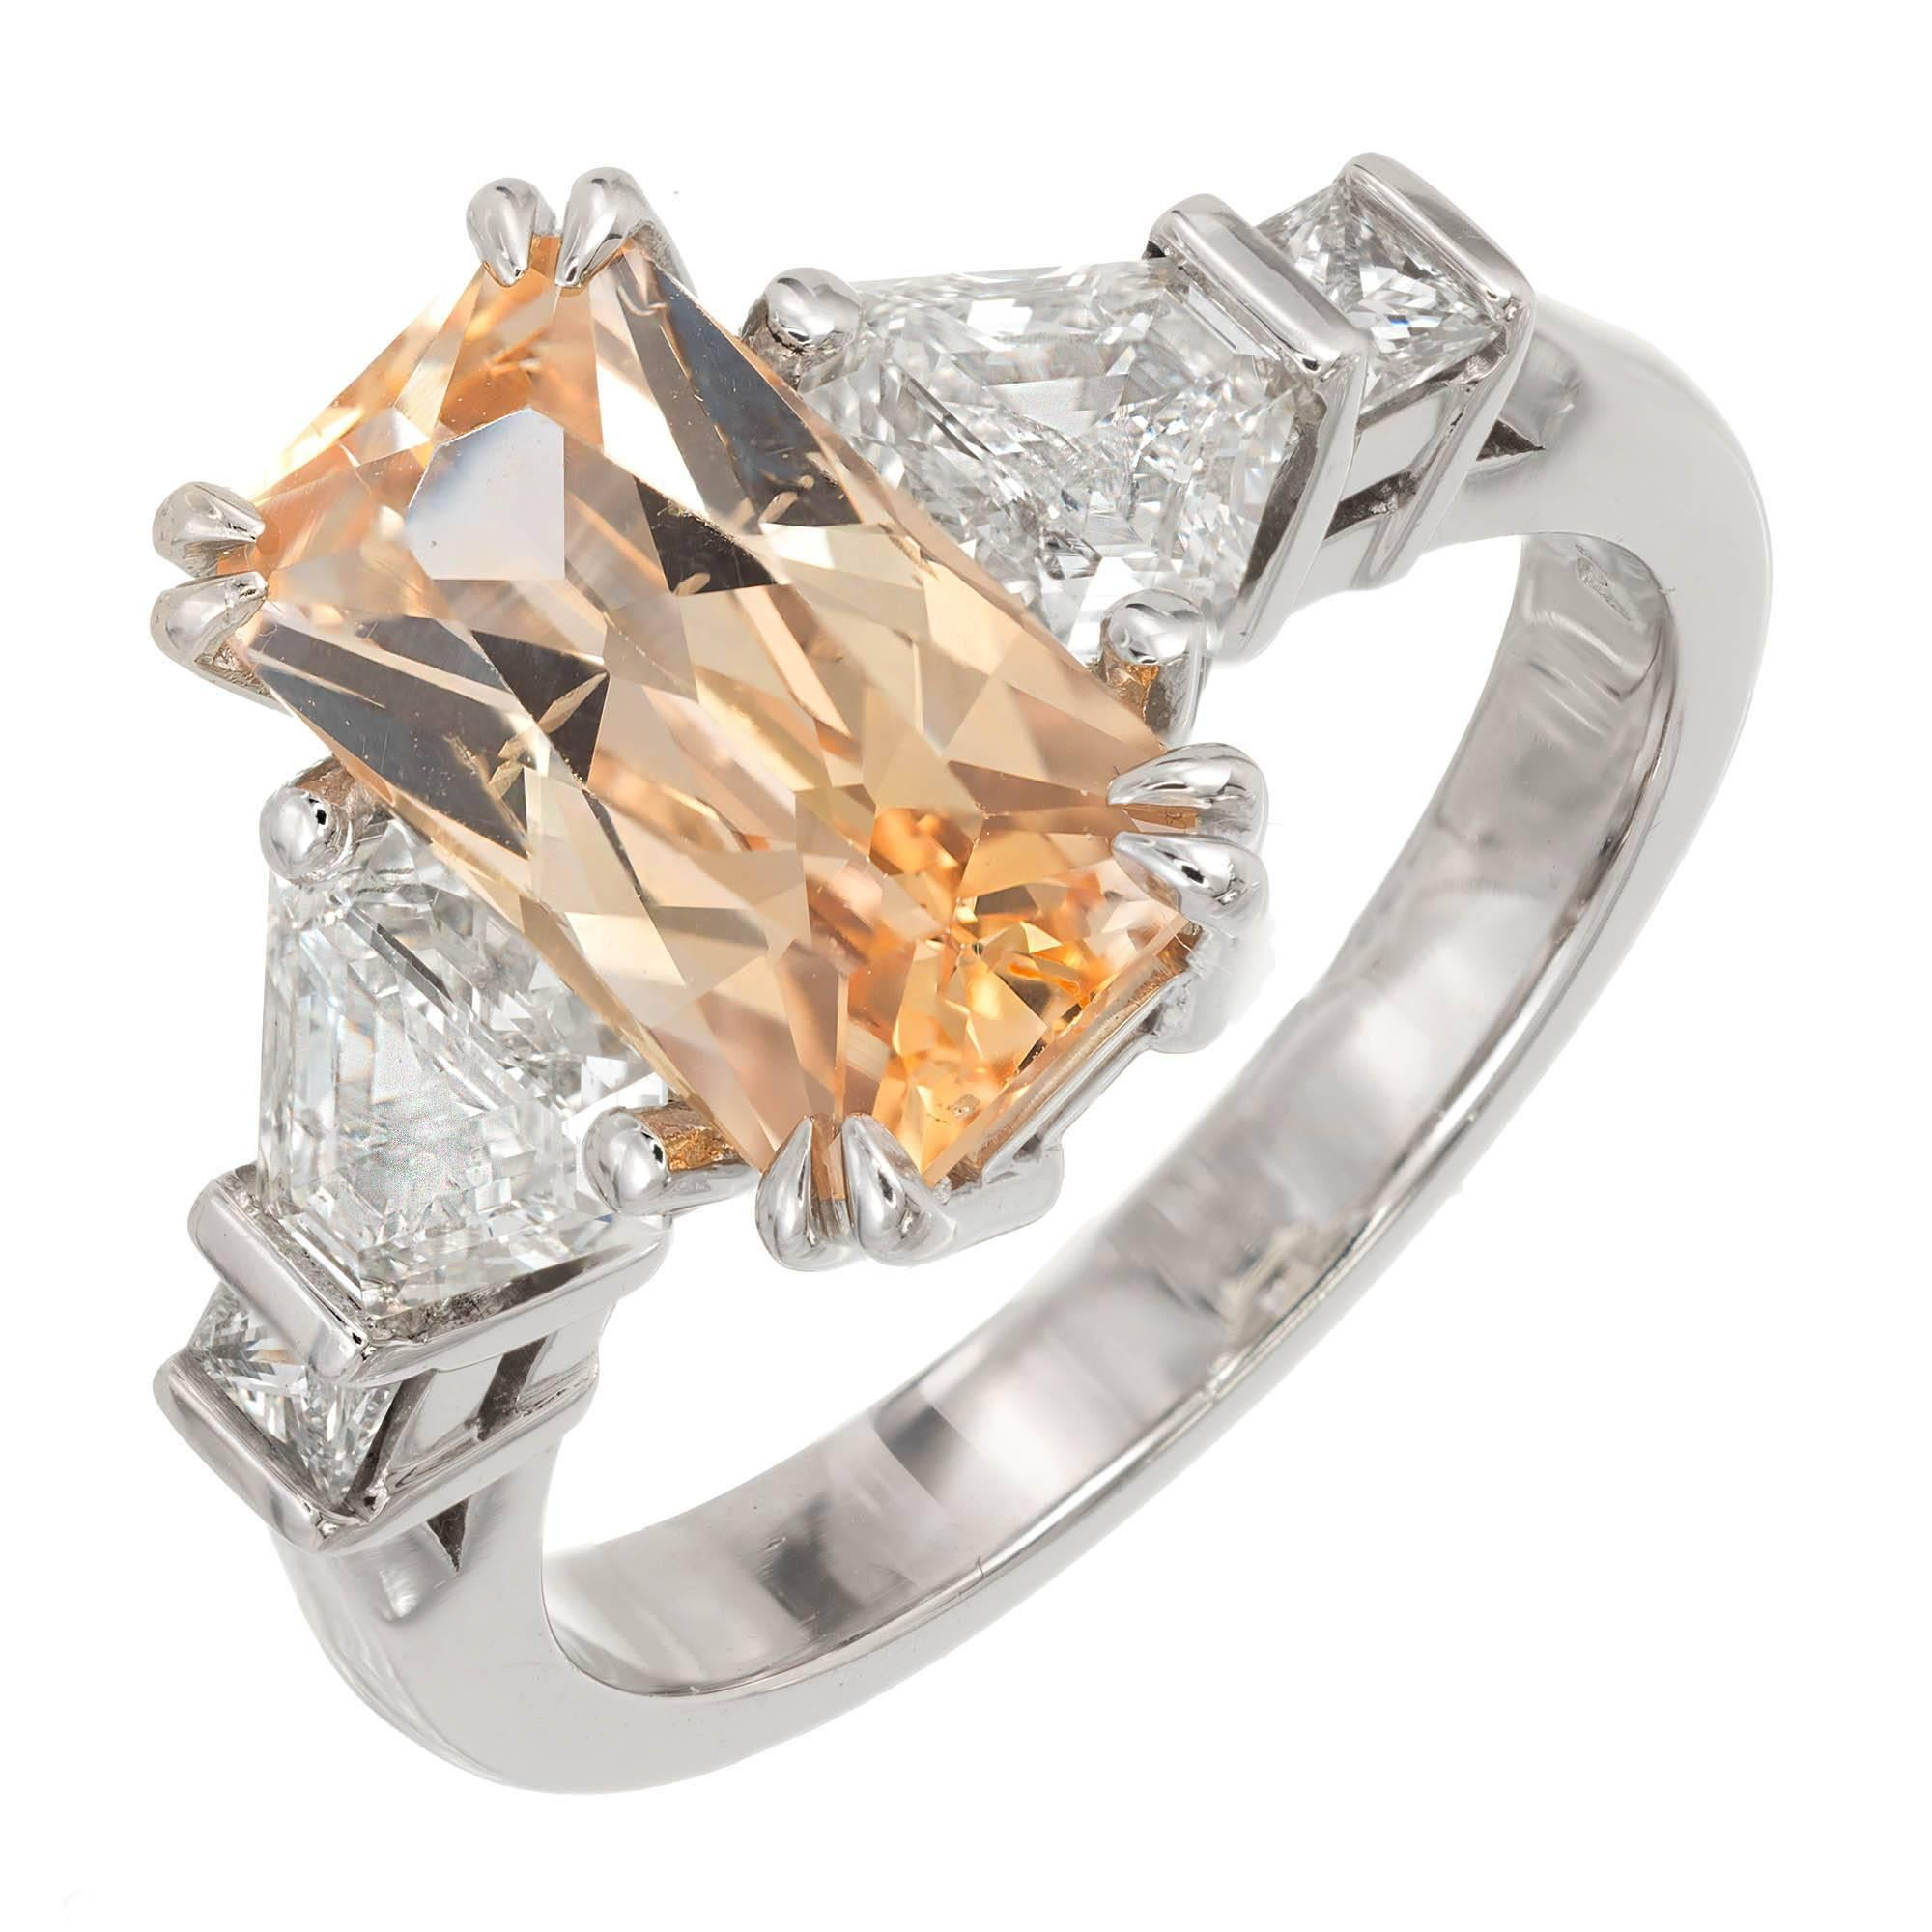 ring band rings citrine and orange jewelry doppio amethyst engagement bvlgari double gold white